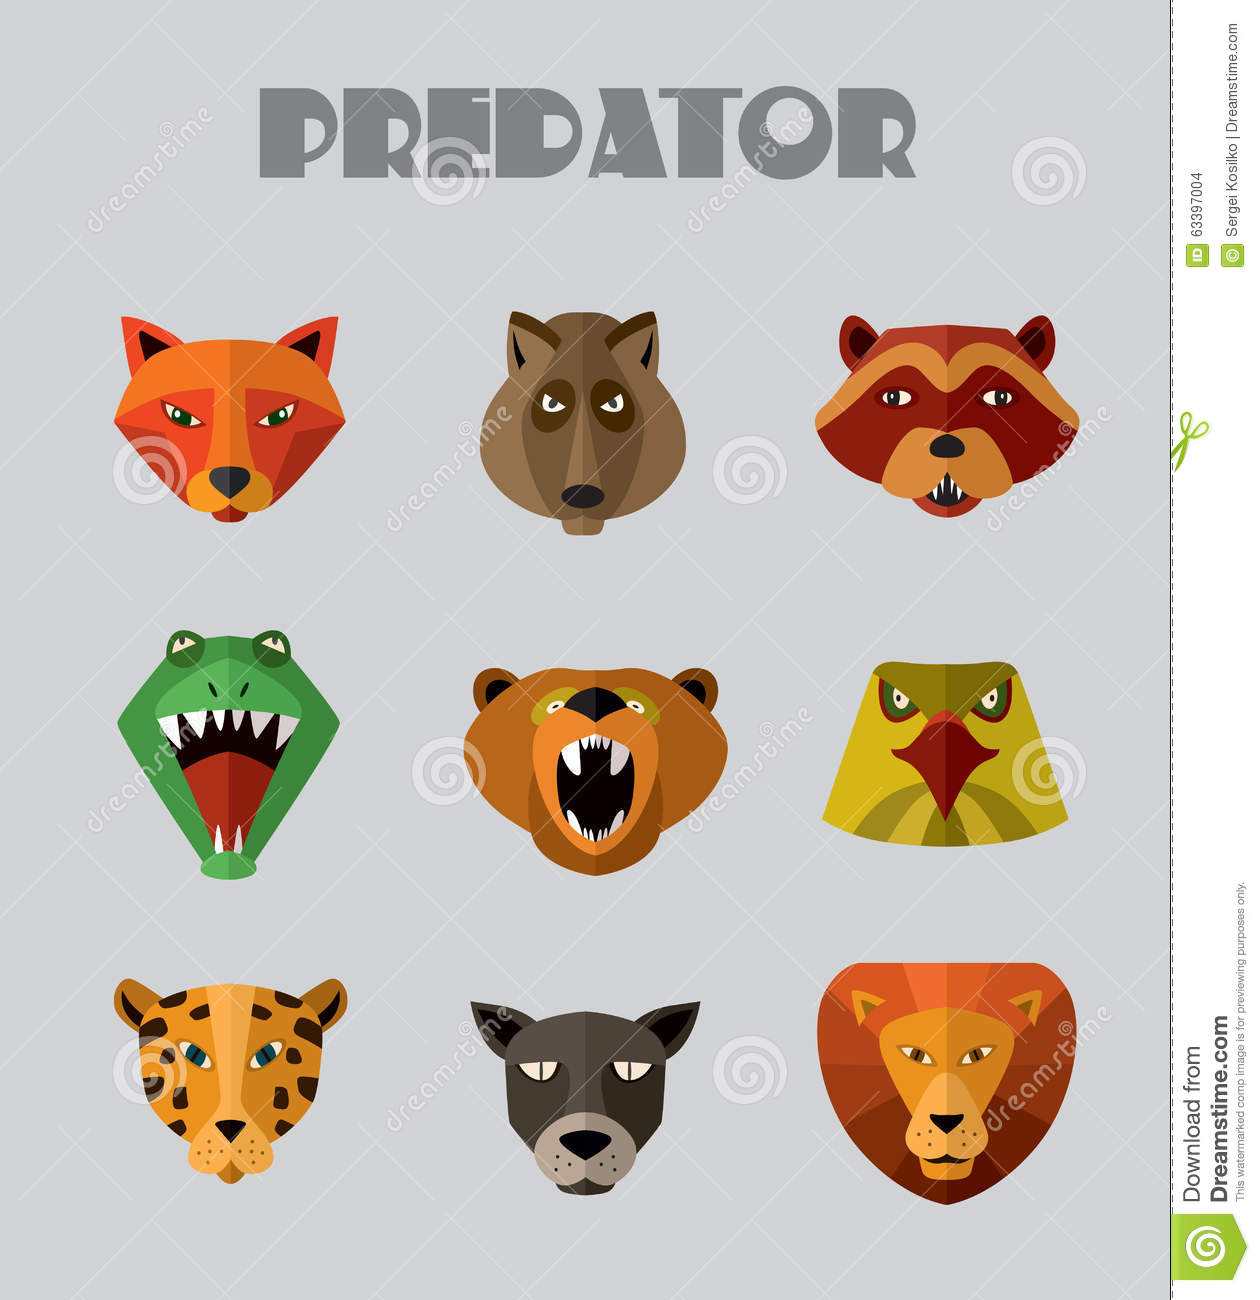 Predator (Animal) clipart #8, Download drawings